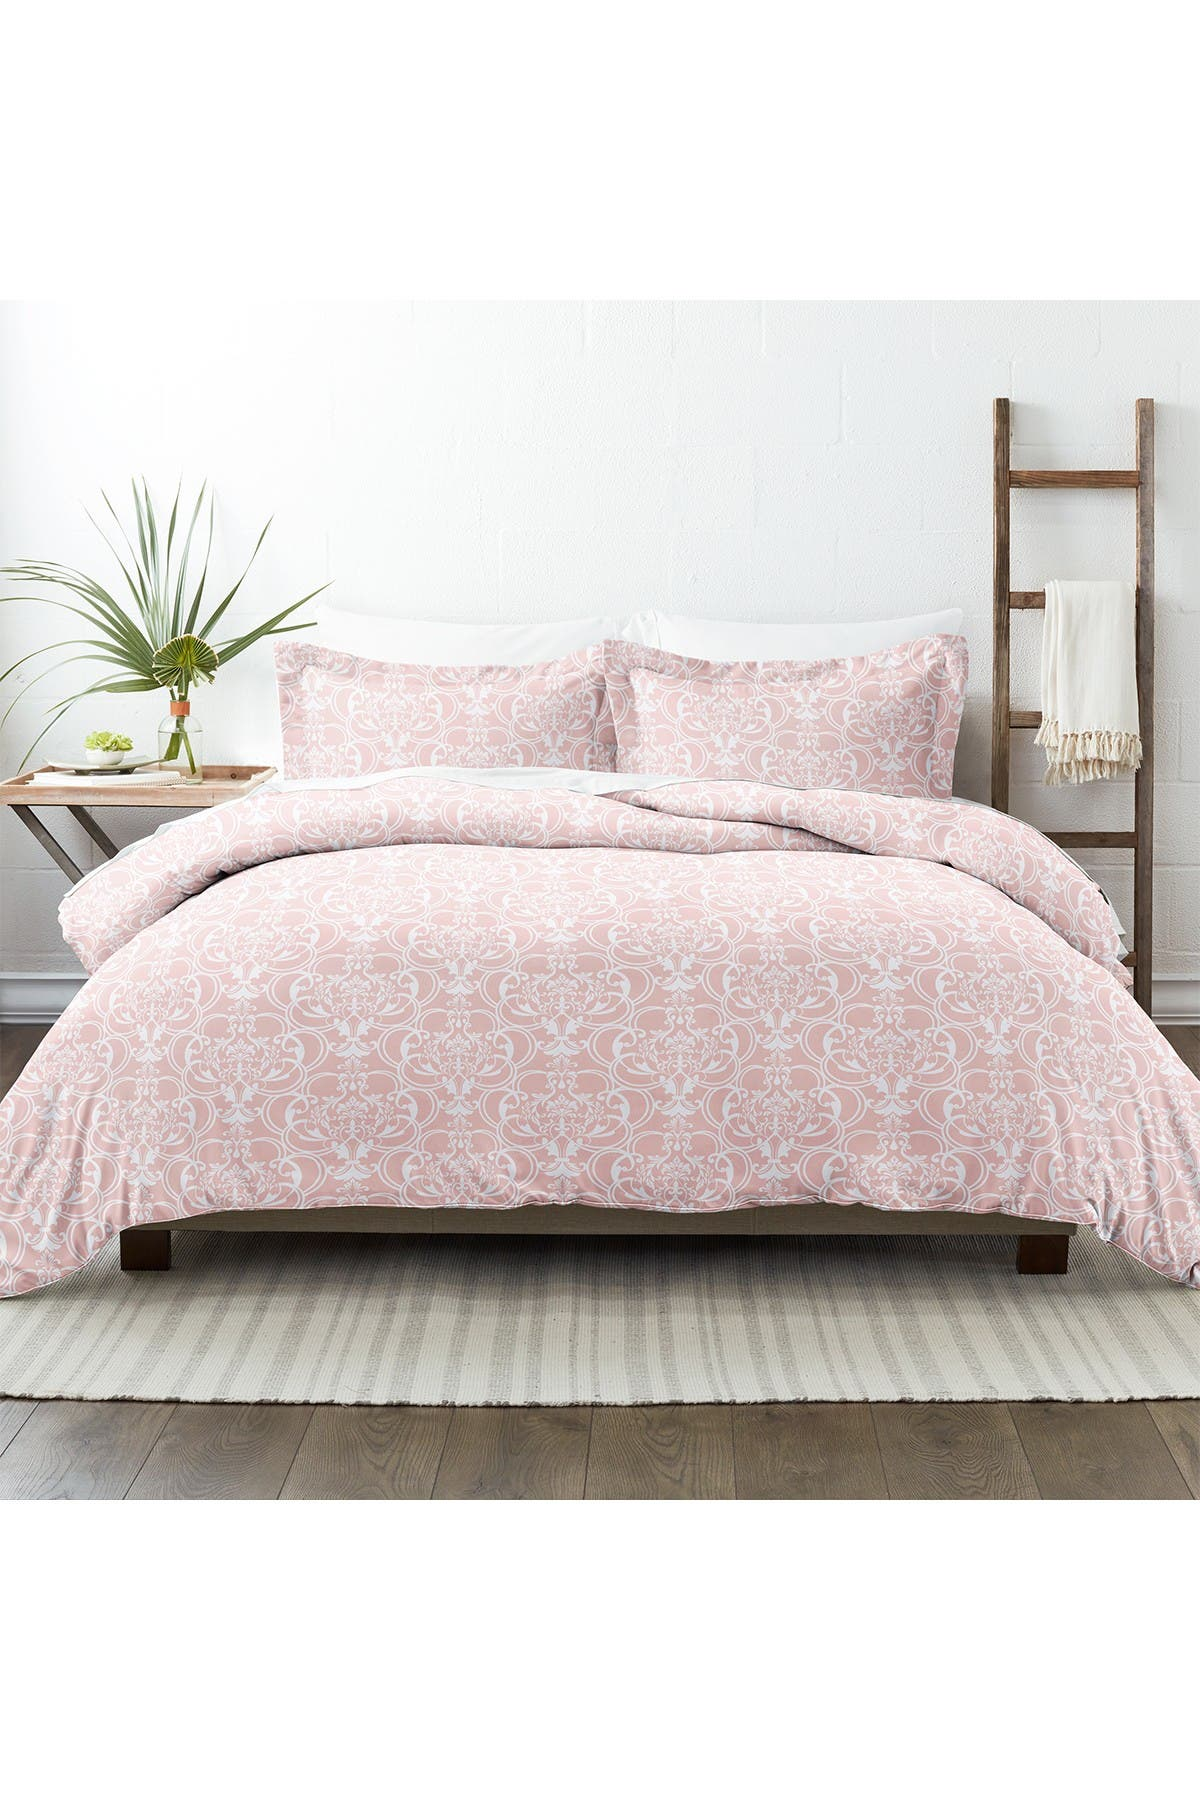 Image of IENJOY HOME Home Collection Premium Ultra Soft Romantic Damask Pattern 3-Piece Duvet Cover Set - Pink - Full / Queen